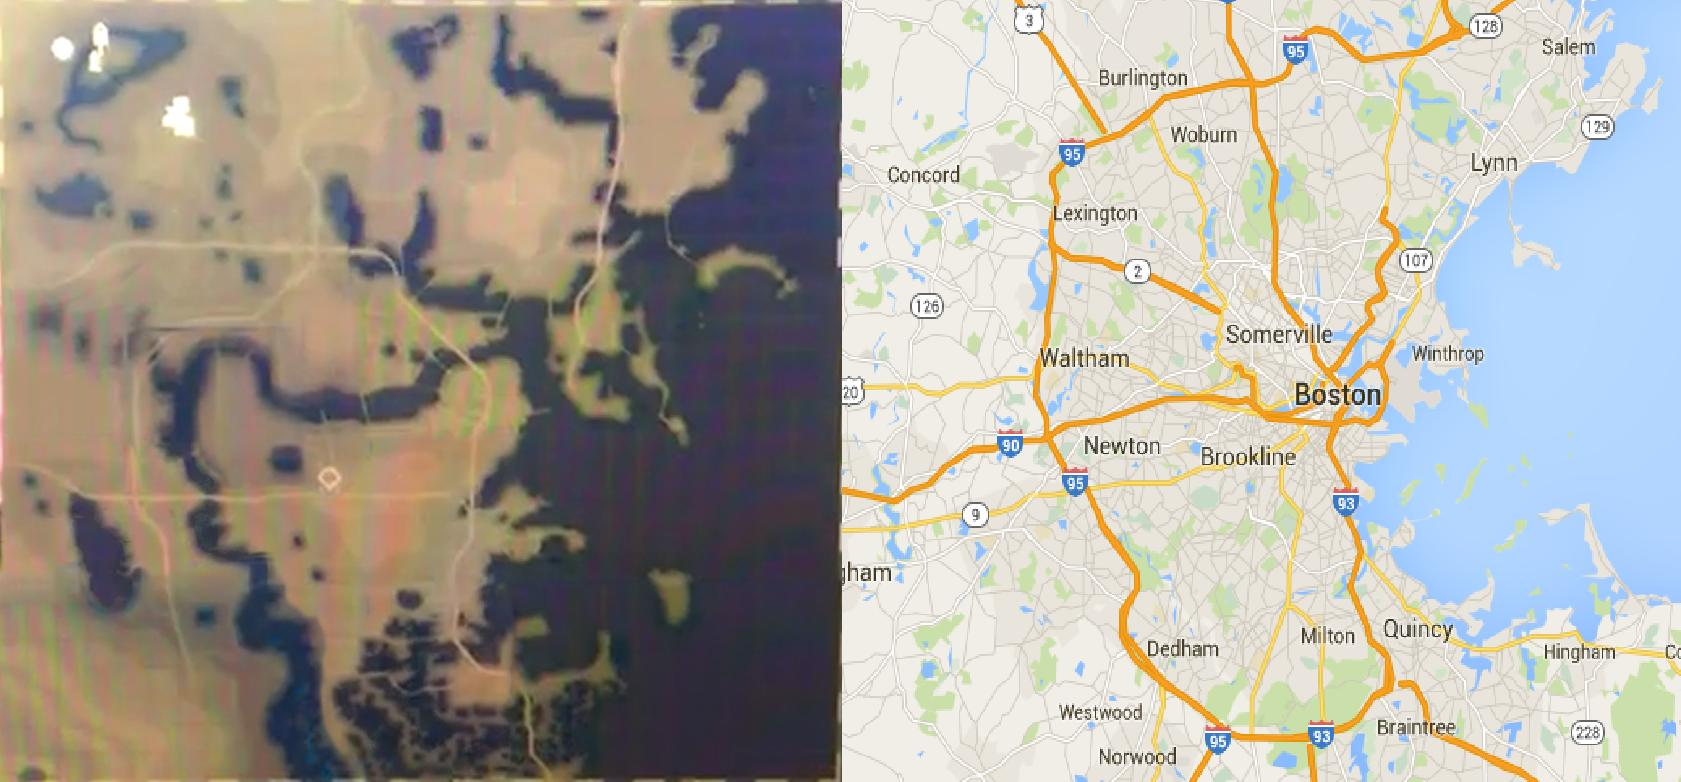 Fallout 4 Map vs Real Life Boston City Map Comparison ...